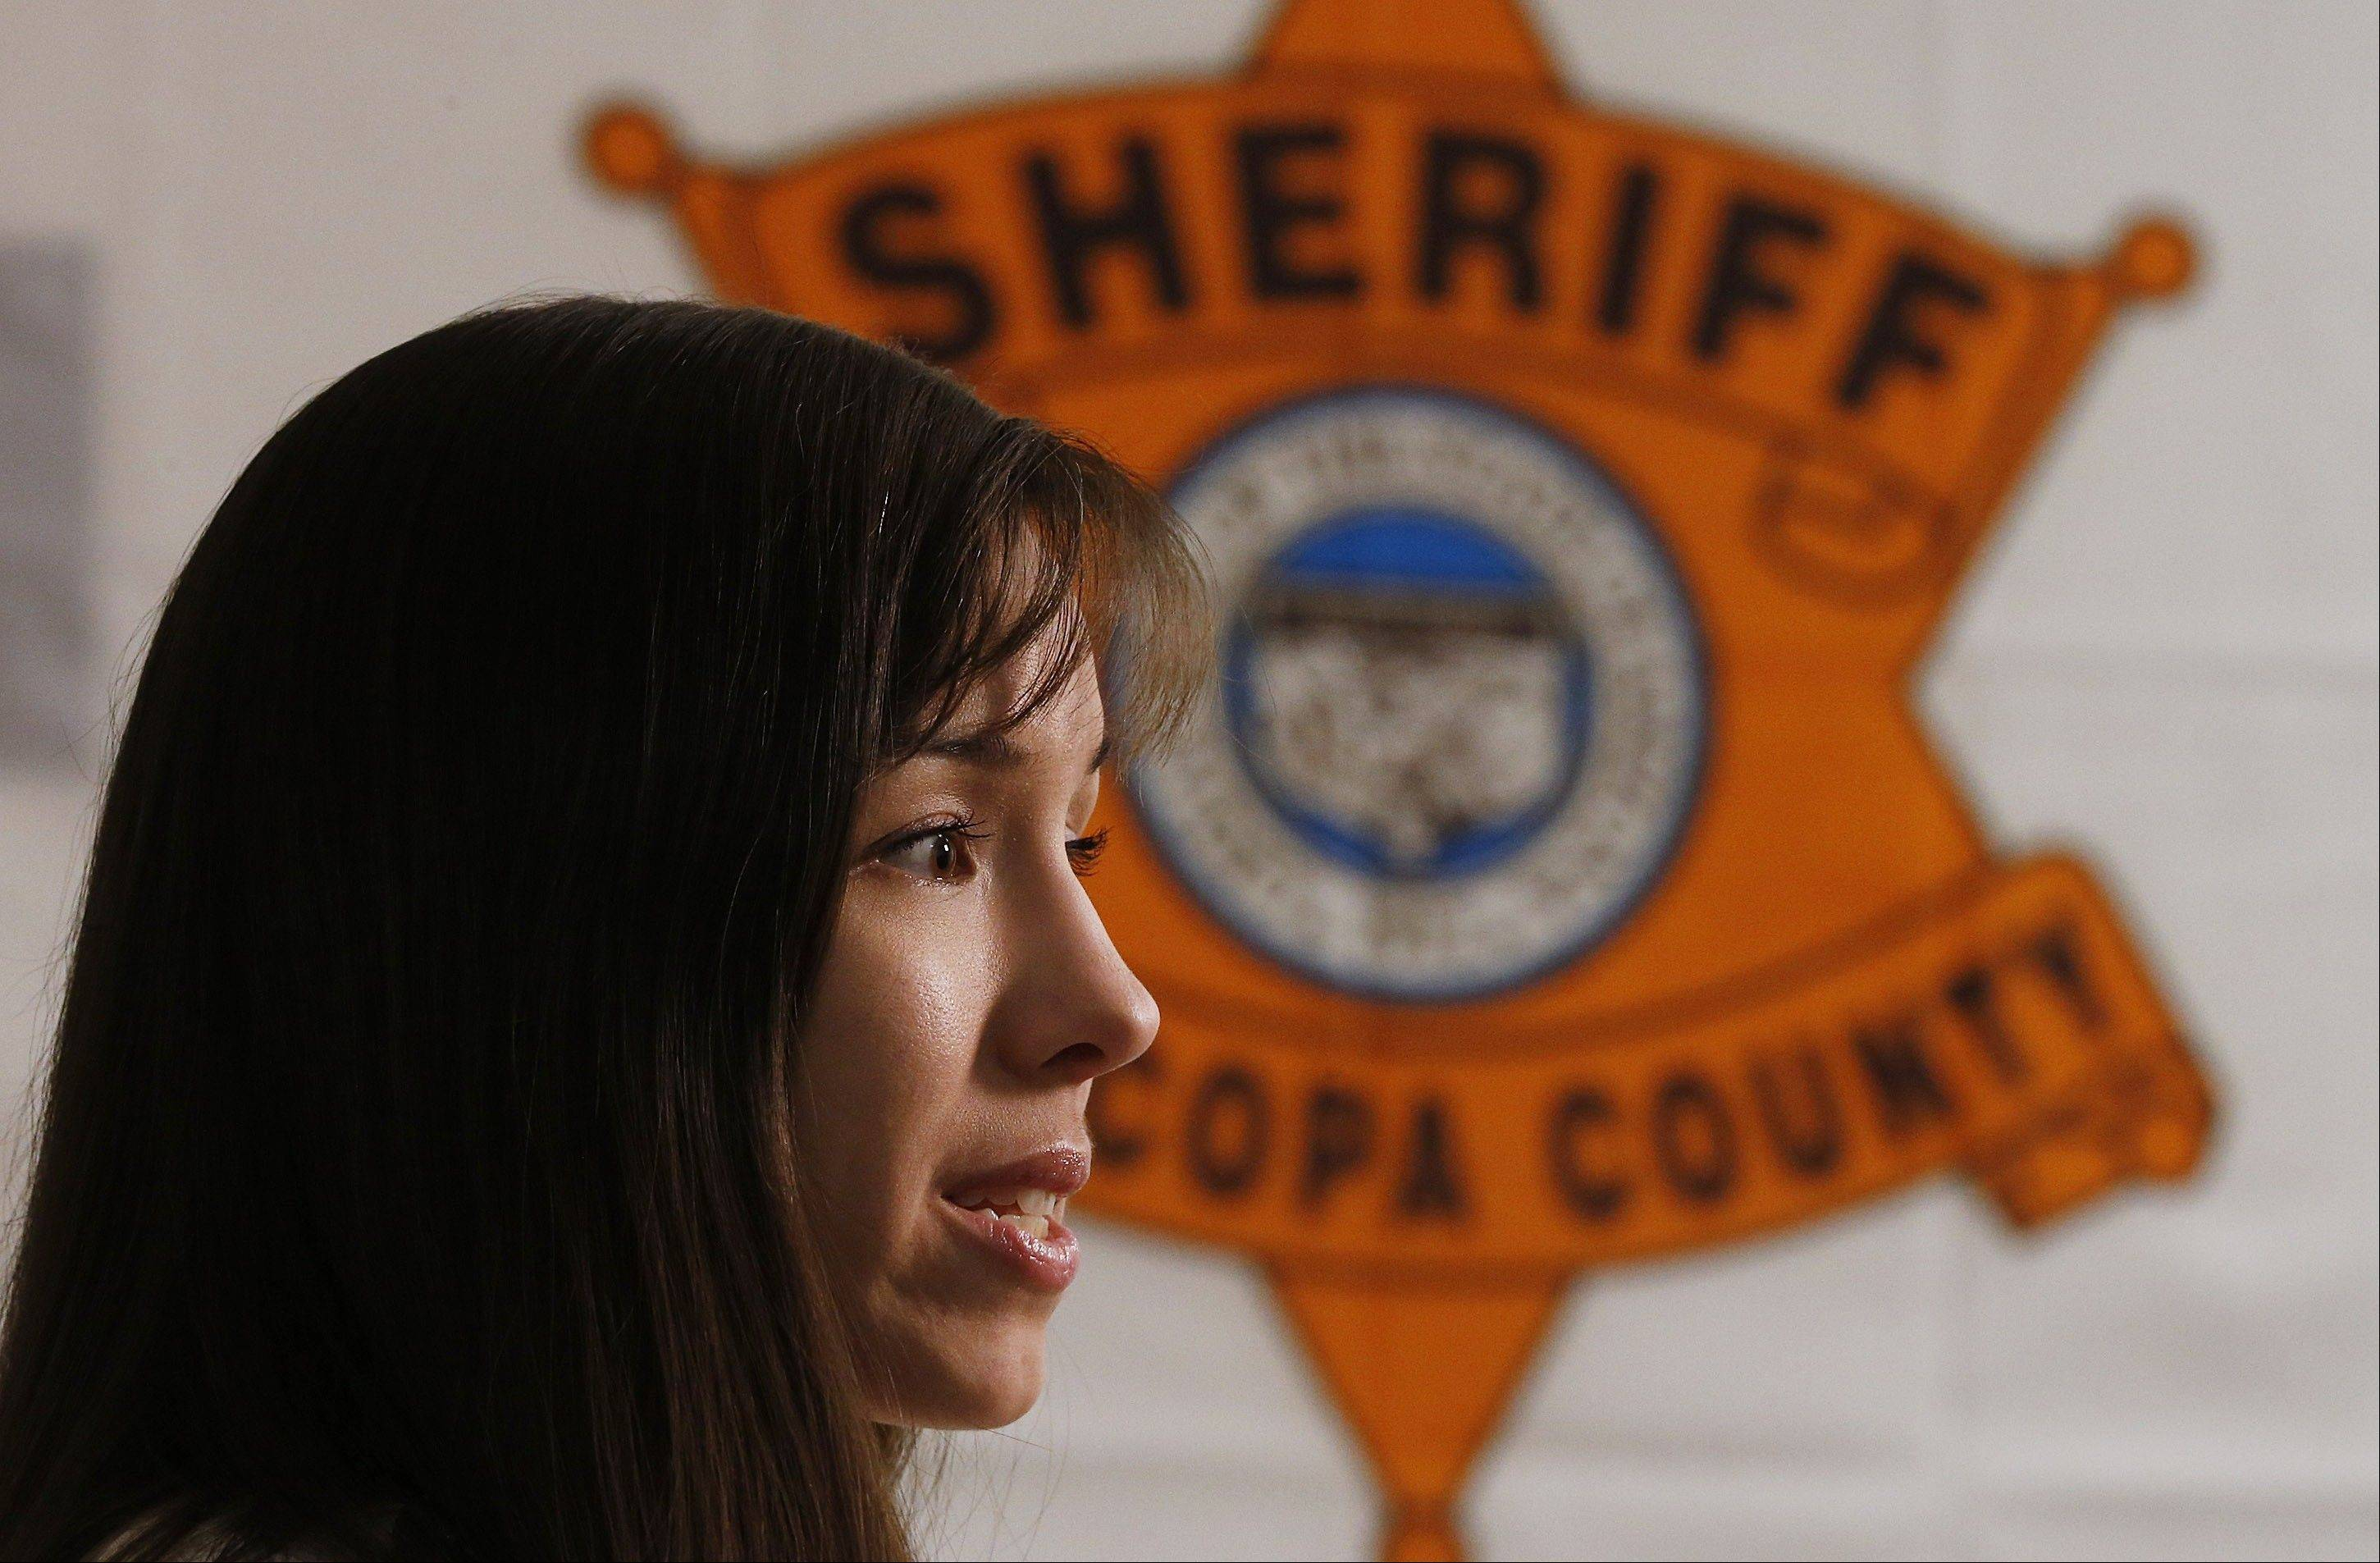 Convicted killer Jodi Arias speaks during an interview at the Maricopa County Estrella Jail on Tuesday, May 21, 2013, in Phoenix. Arias was convicted recently of killing her former boyfriend Travis Alexander in his suburban Phoenix home back in 2008, made a plea in court on Tuesday for life in prison, instead of execution, saying she can contribute to society if allowed to live.